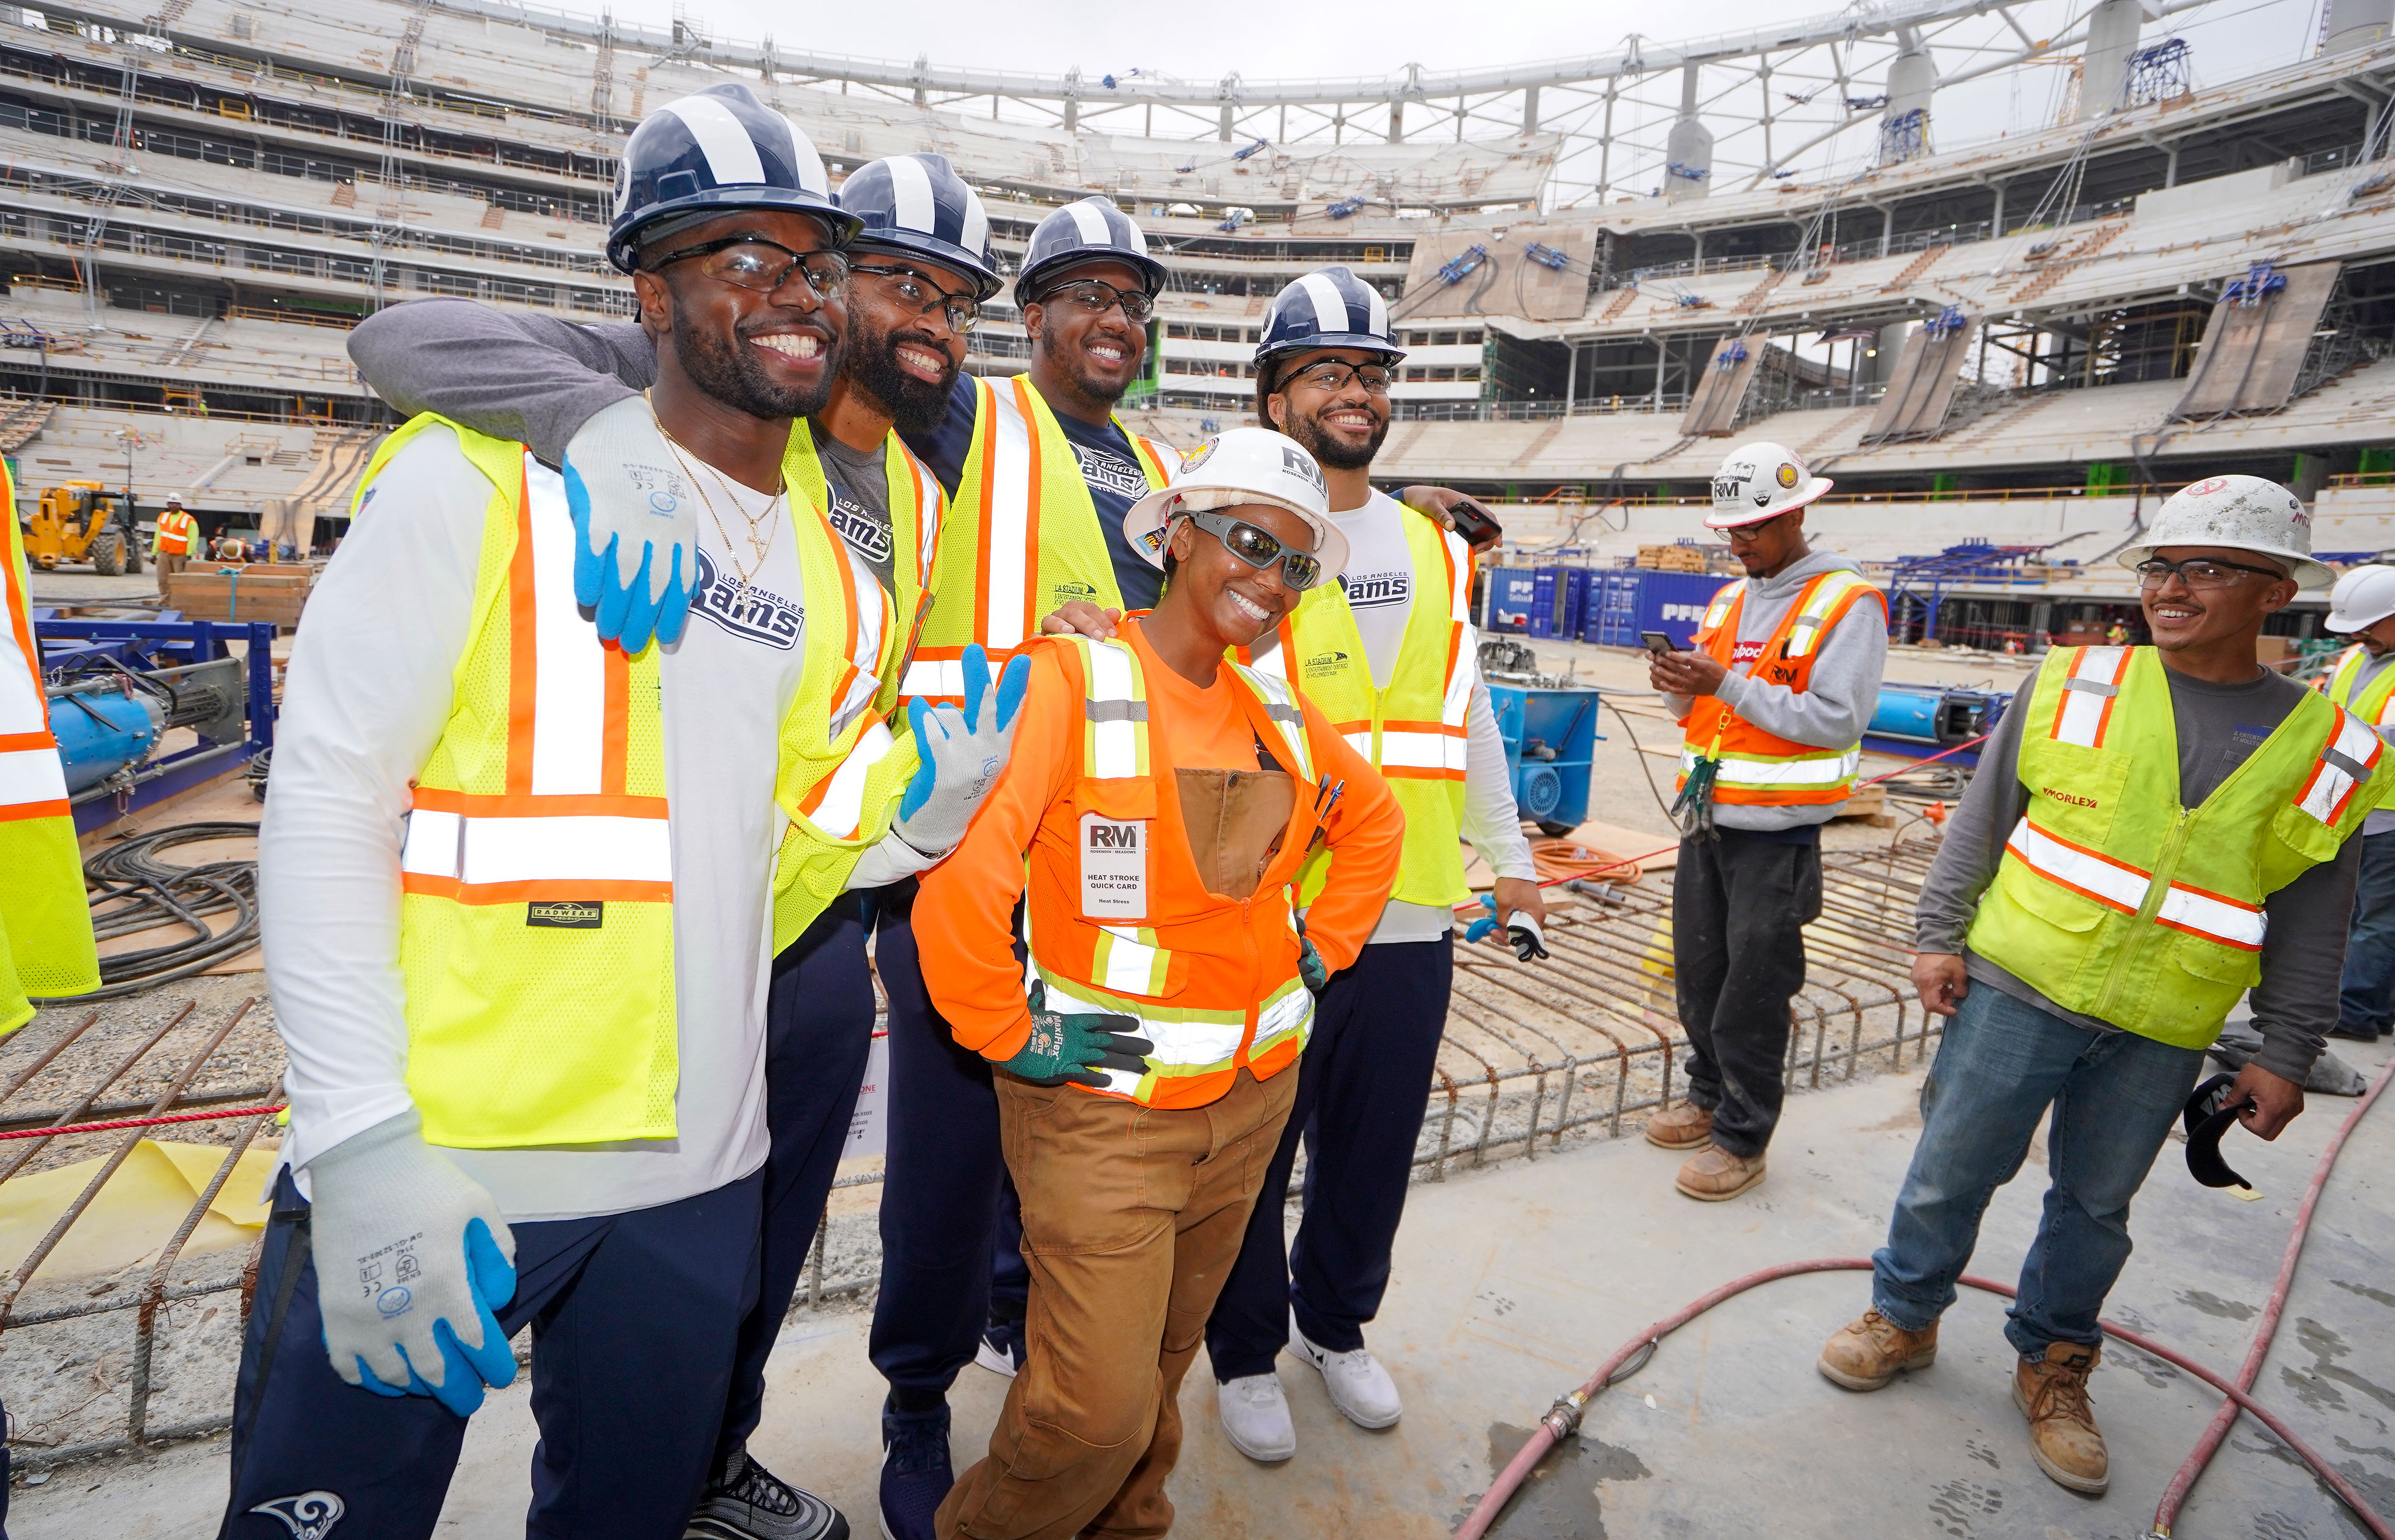 Construction worker Sheyonna Grayson takes a photo with some of the Los Angeles Rams' 2019 rookies, Jun. 7, 2019.